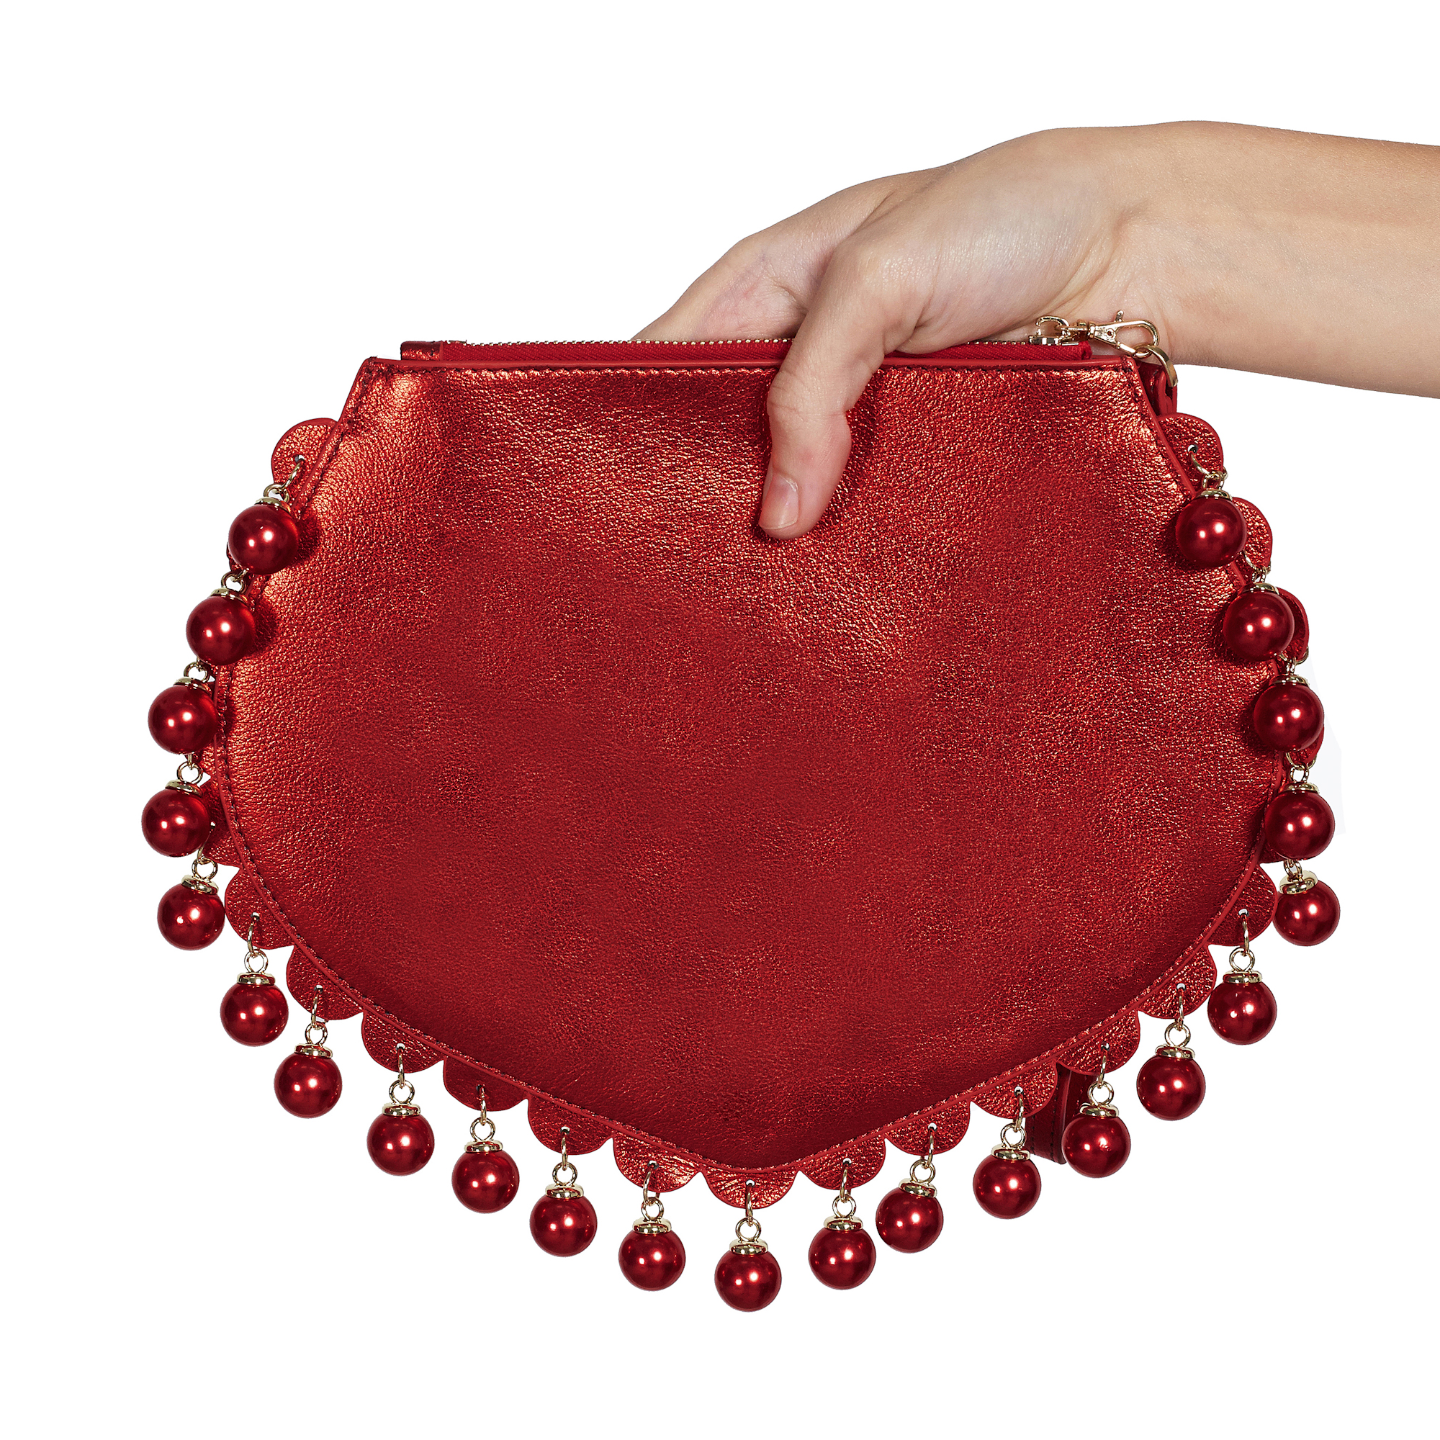 Back view of CHARMAINE sharp red clutch bag with pearls